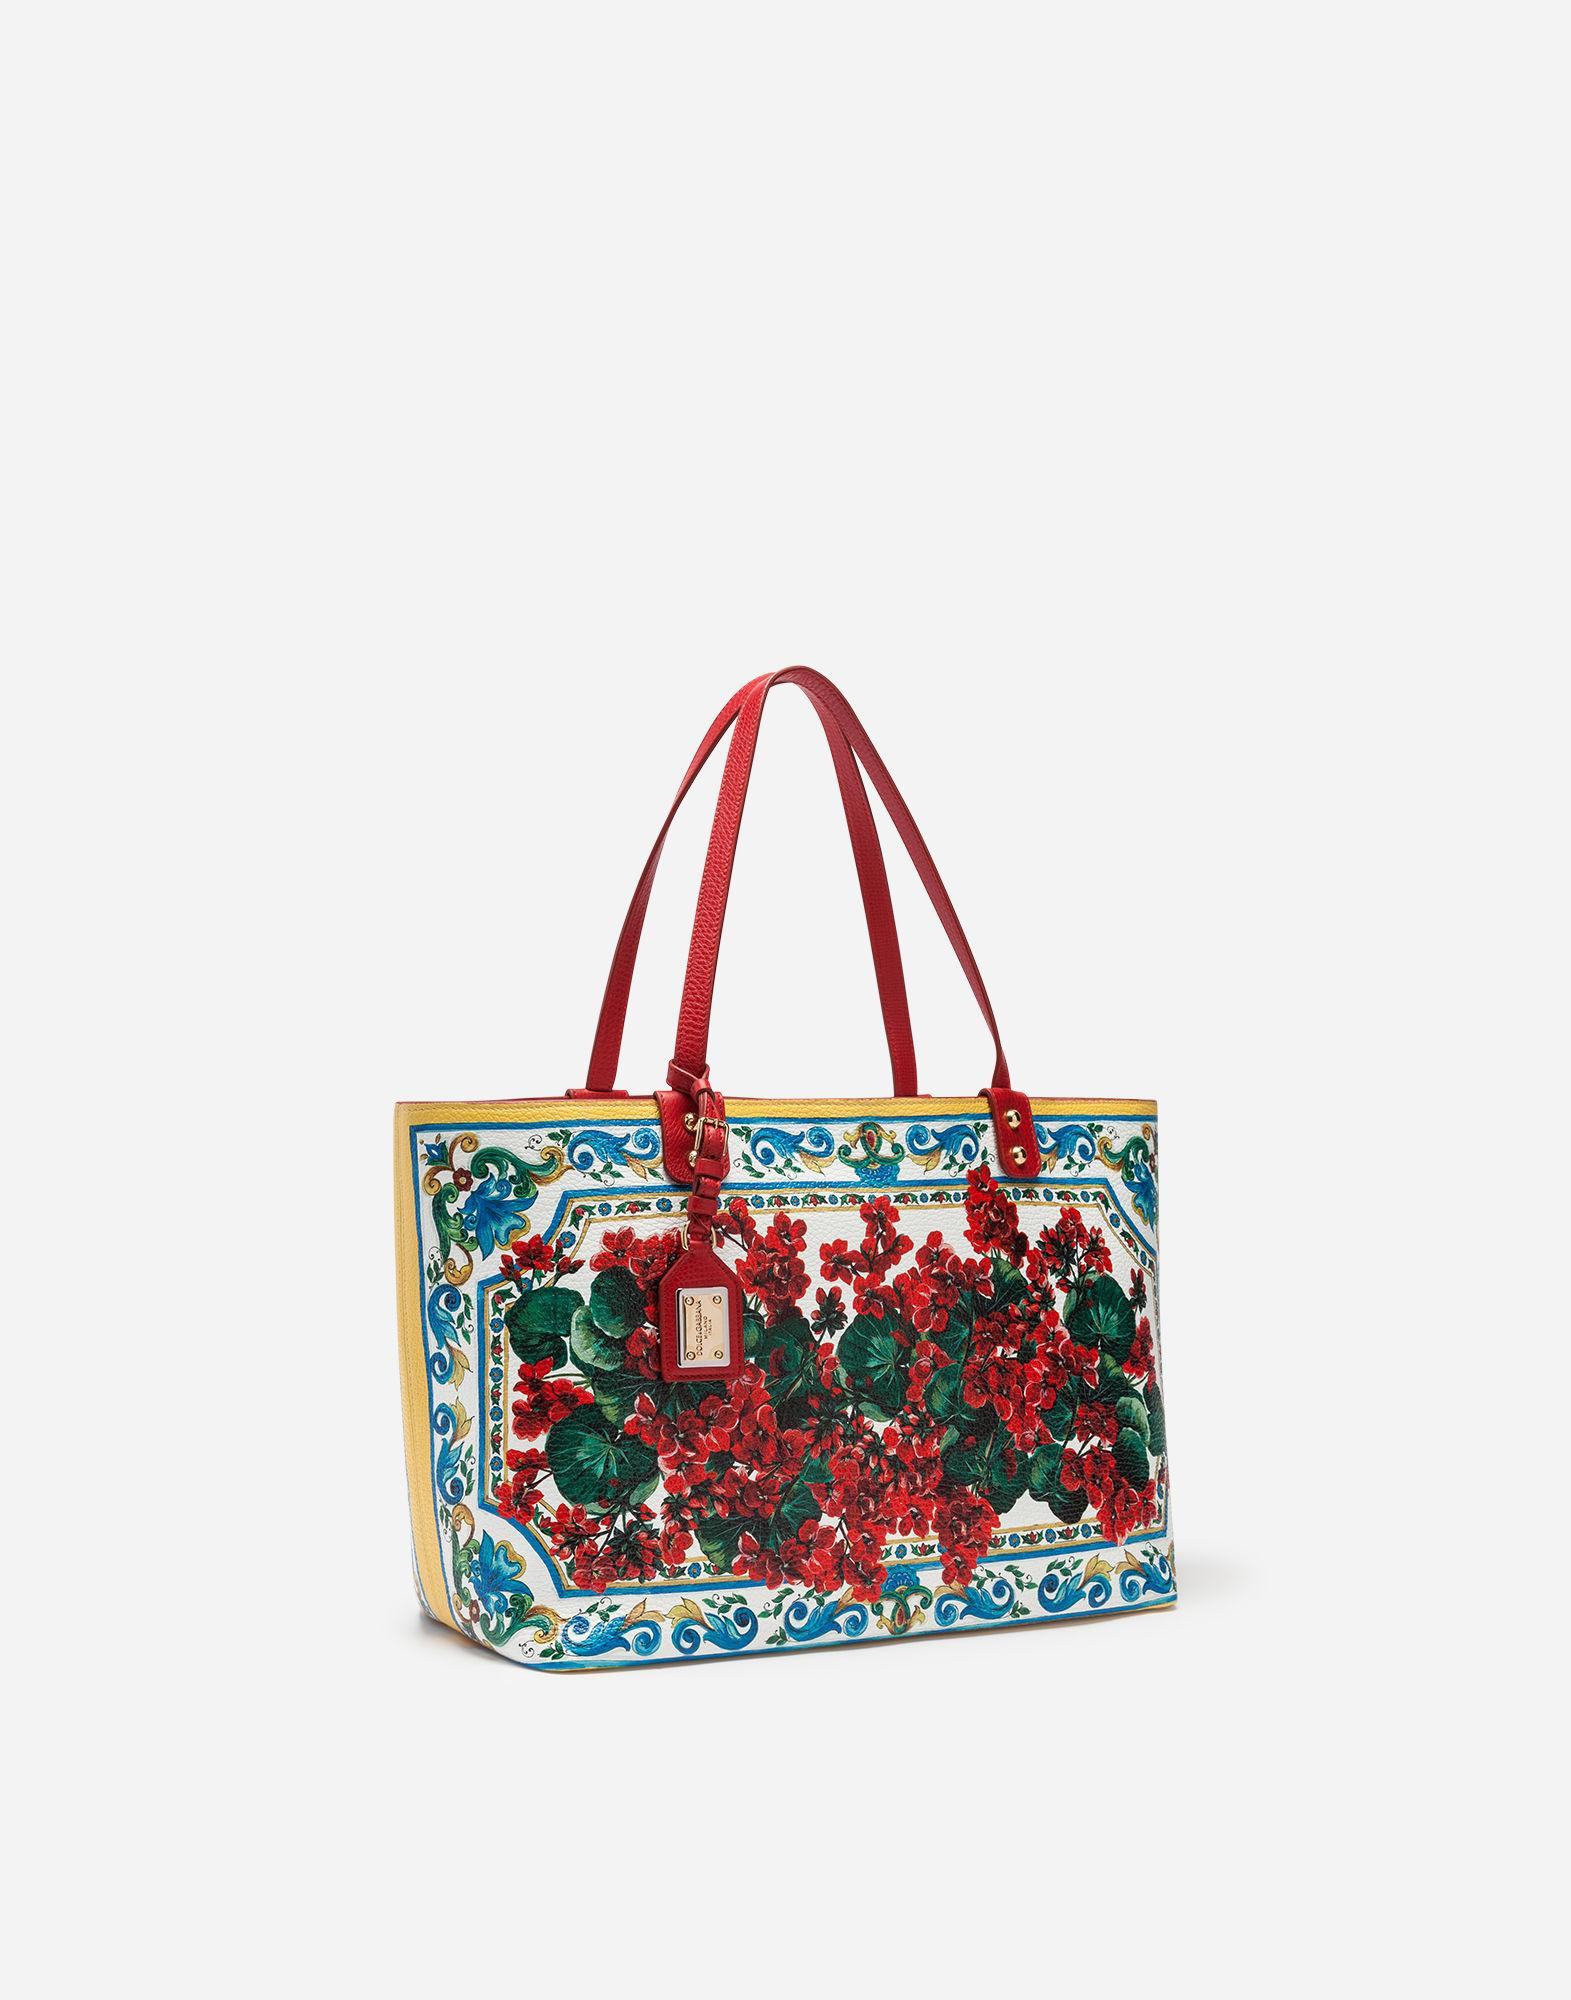 a9384b1c5d18 Lyst - Dolce   Gabbana Beatrice Shopping Bag In Printed Calfskin in Red